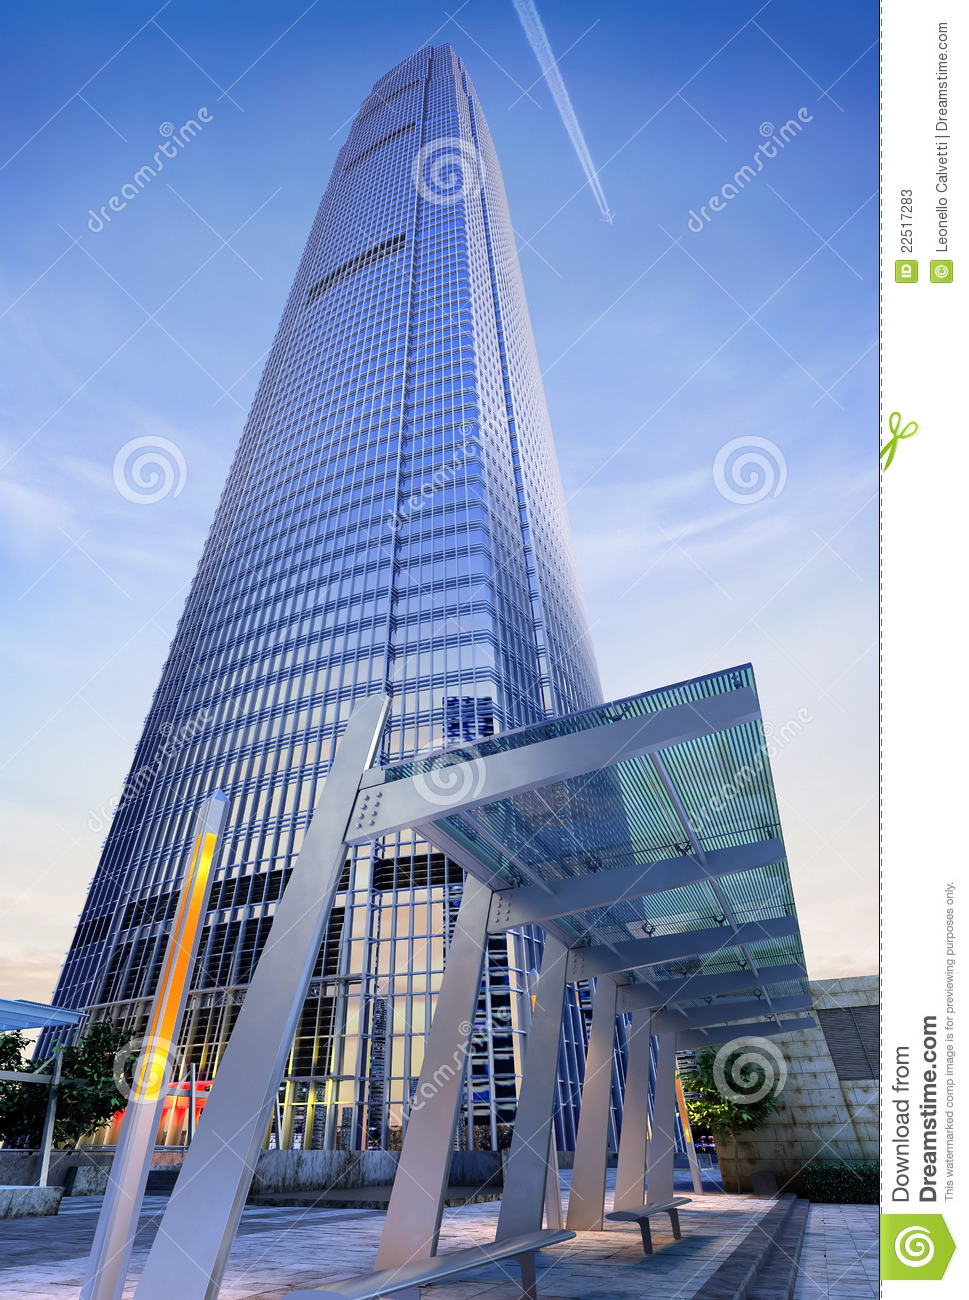 Construction Technology For Tall Buildings Free Download